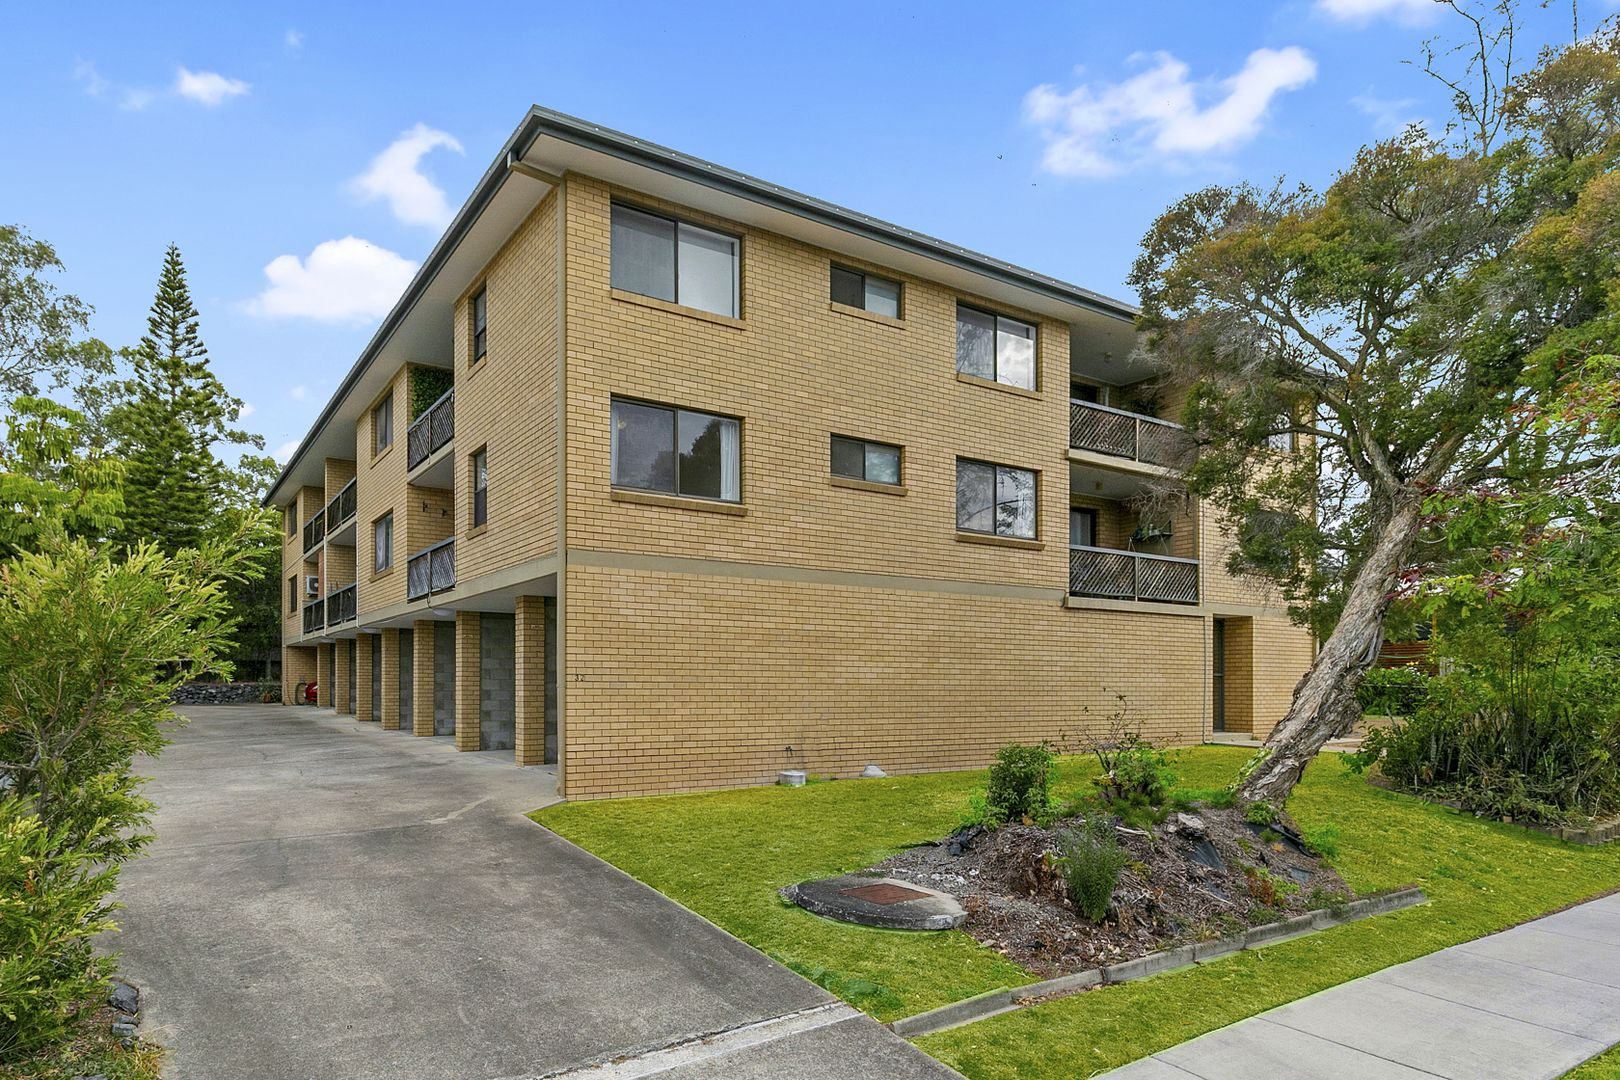 2/32 Moore Street, Morningside QLD 4170, Image 0